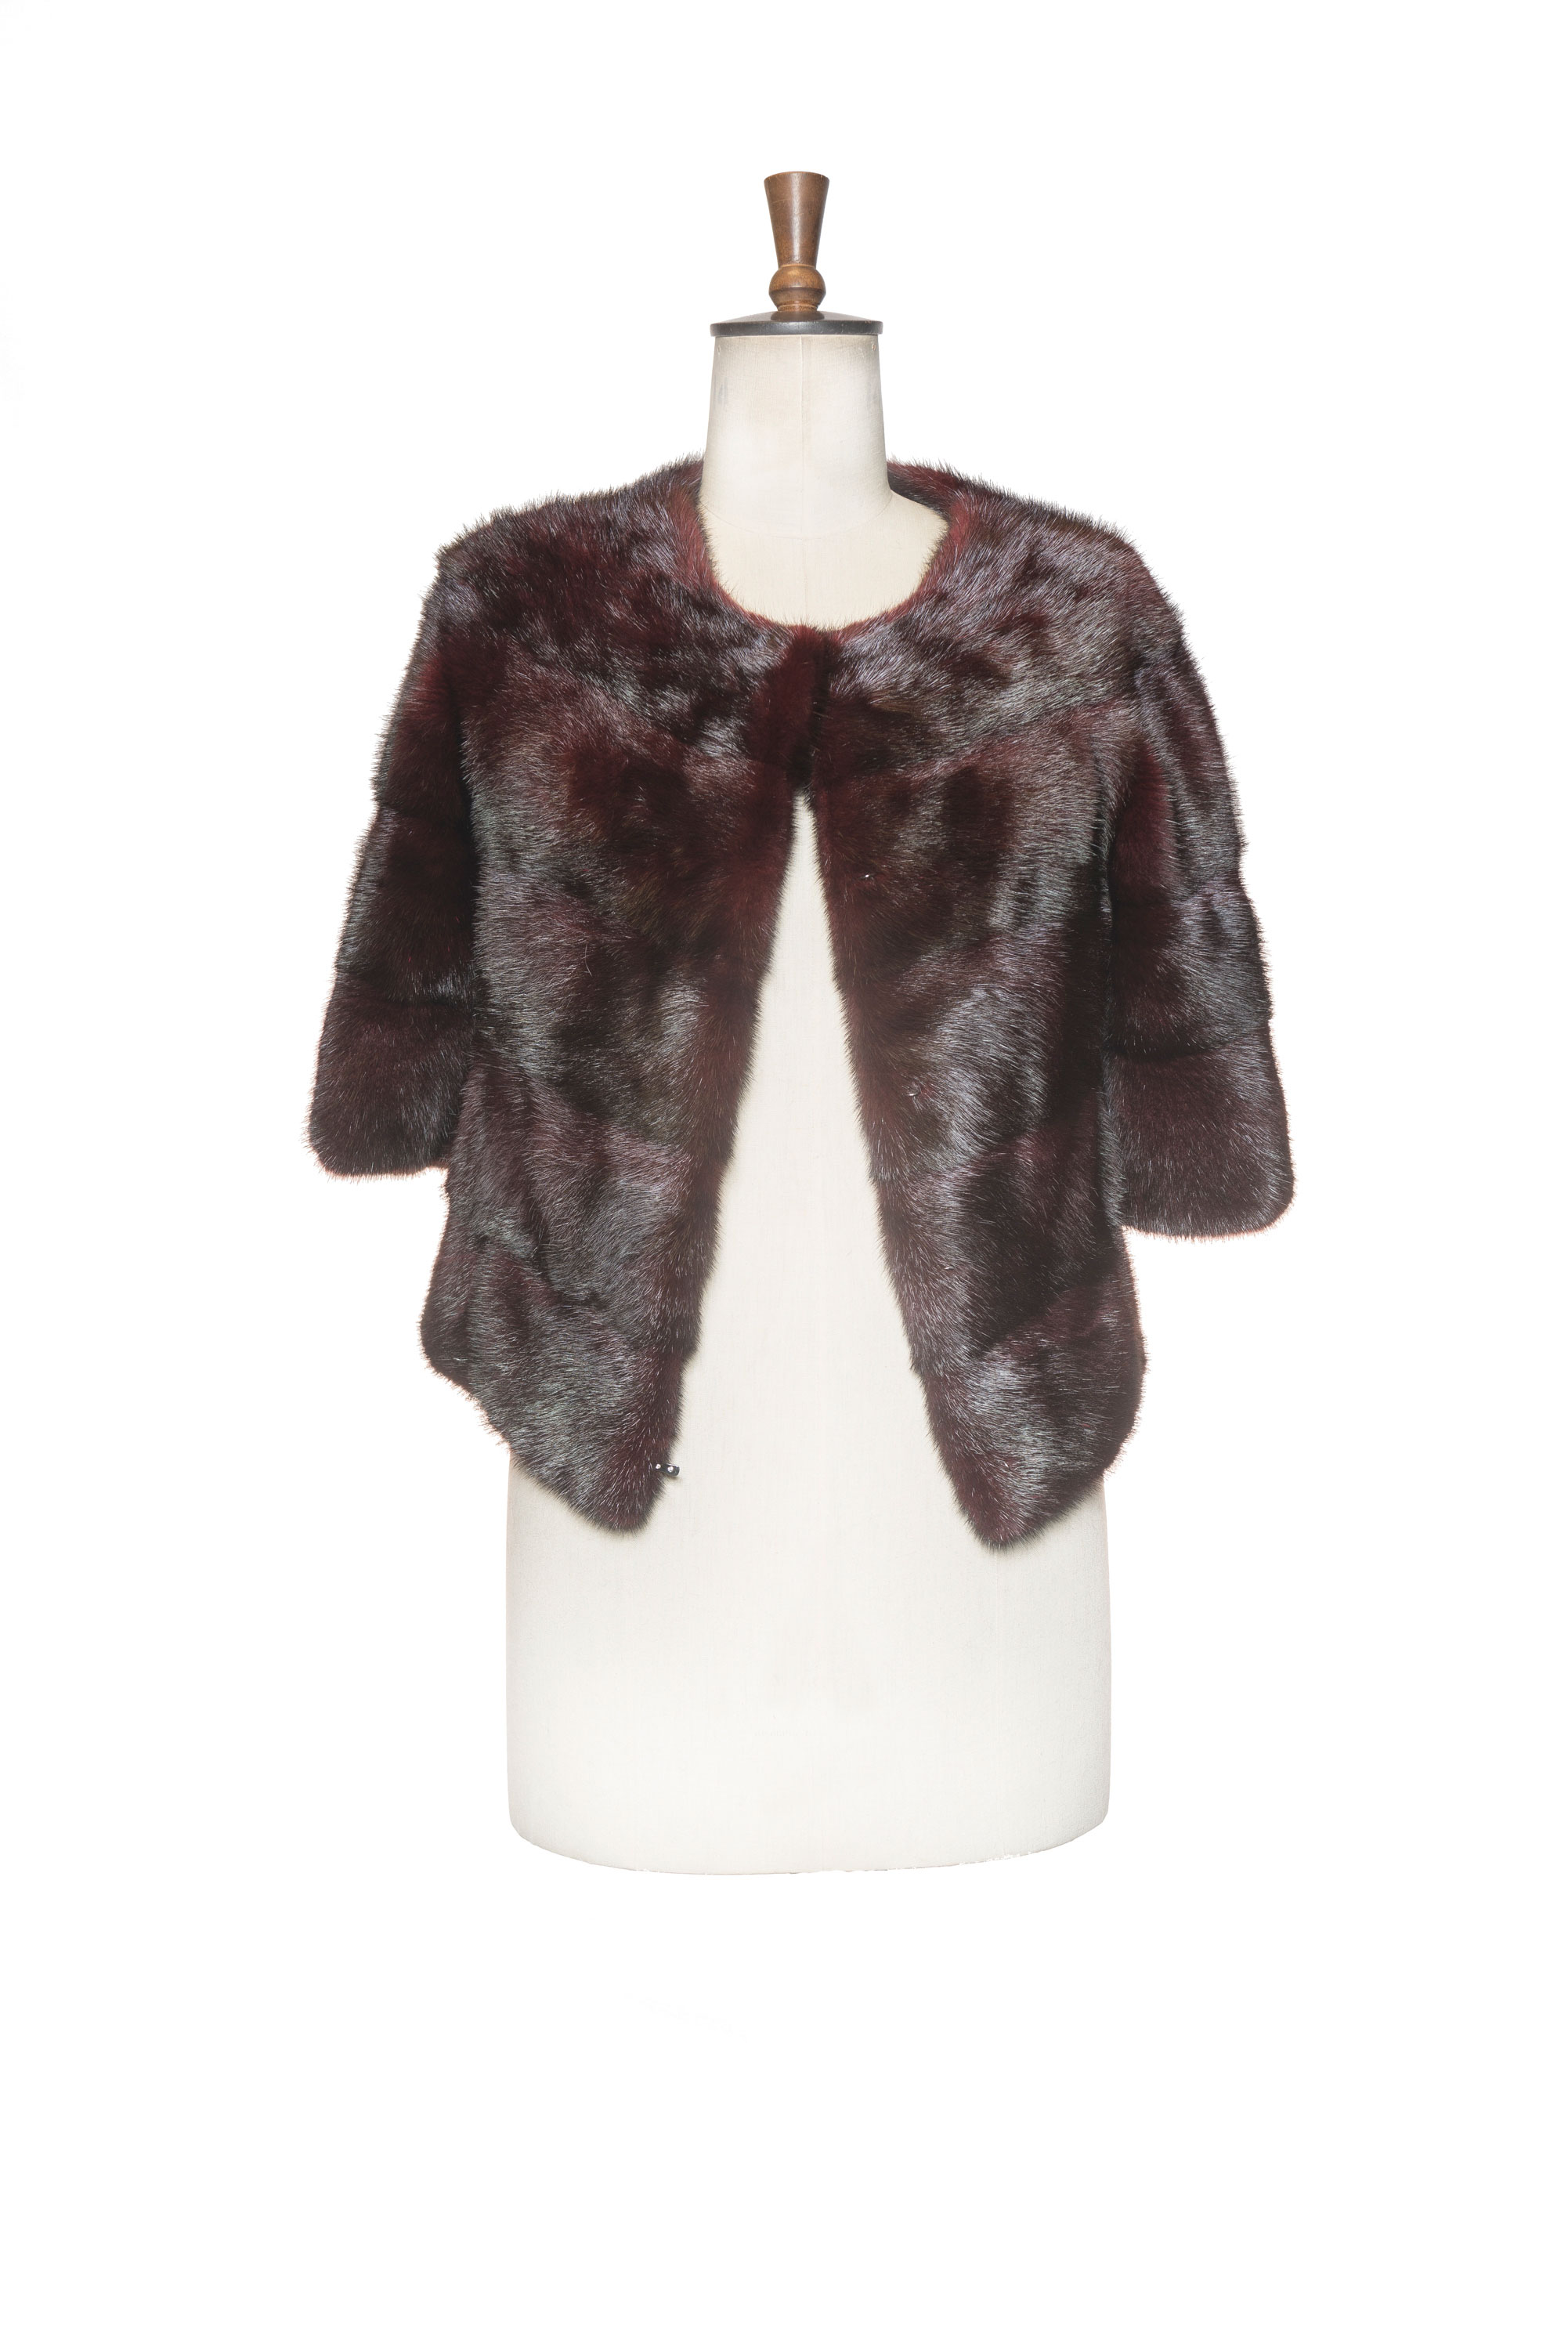 dark fur coat front side